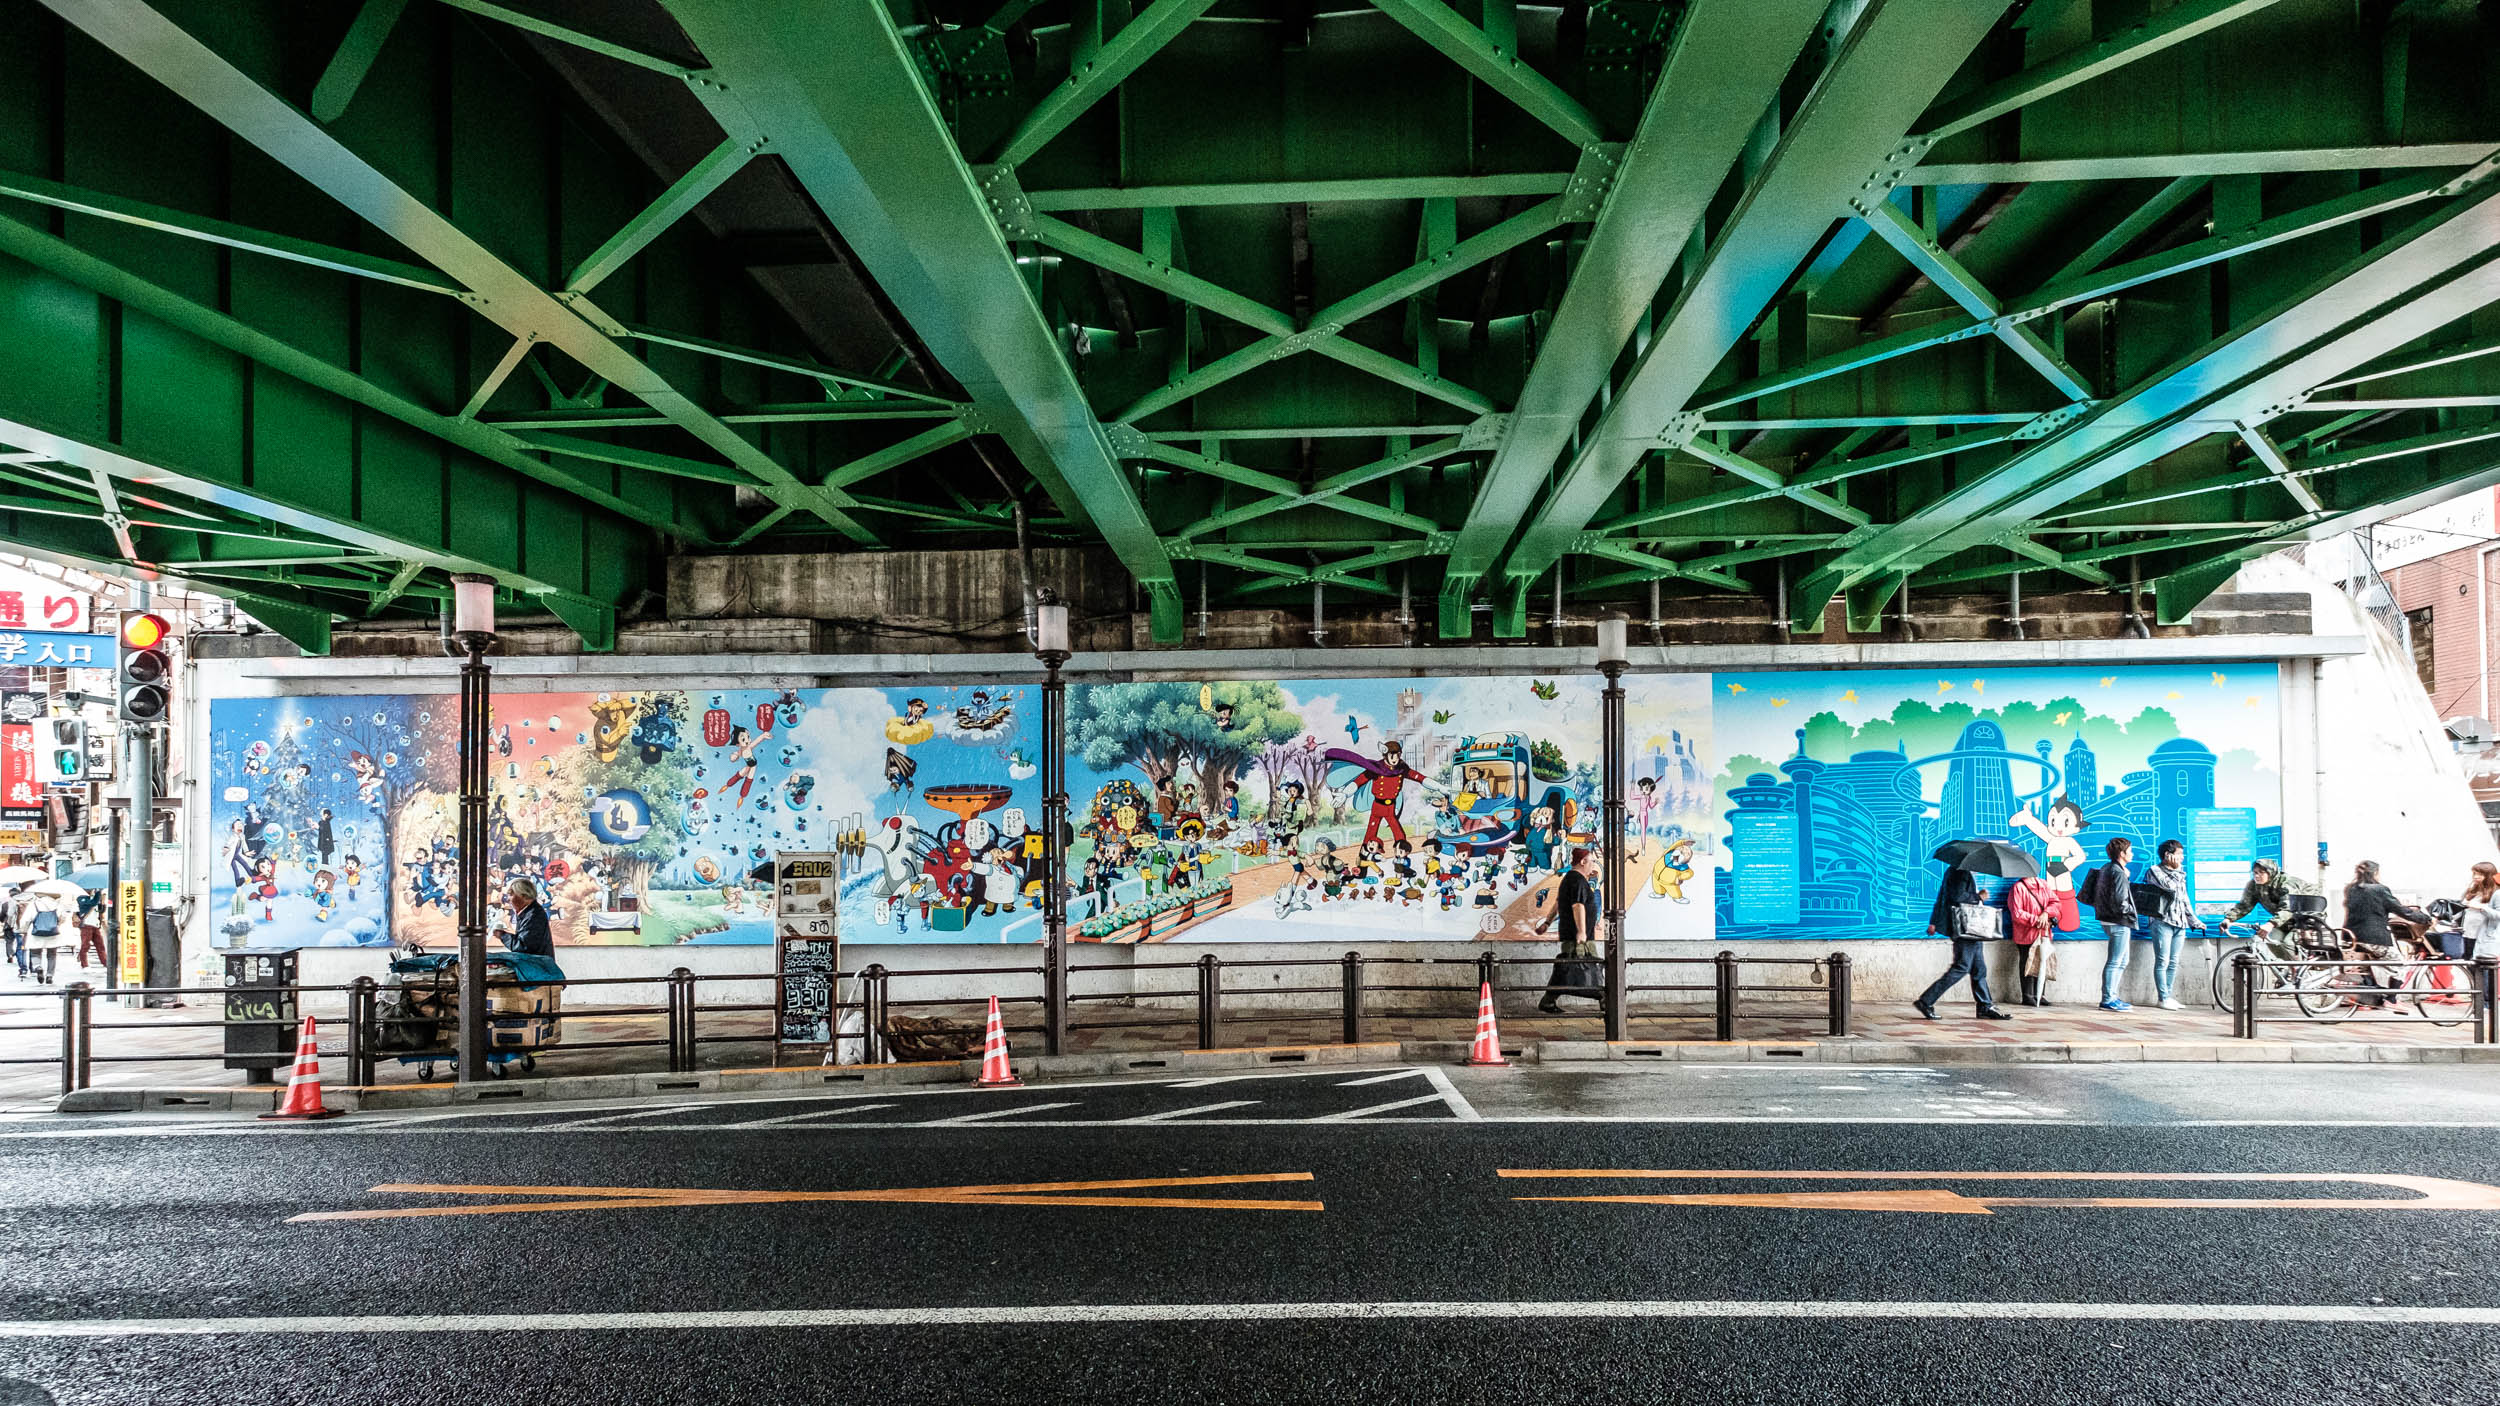 The biggest mural, right across the road from Takadanobaba station under the Yamanote tracks